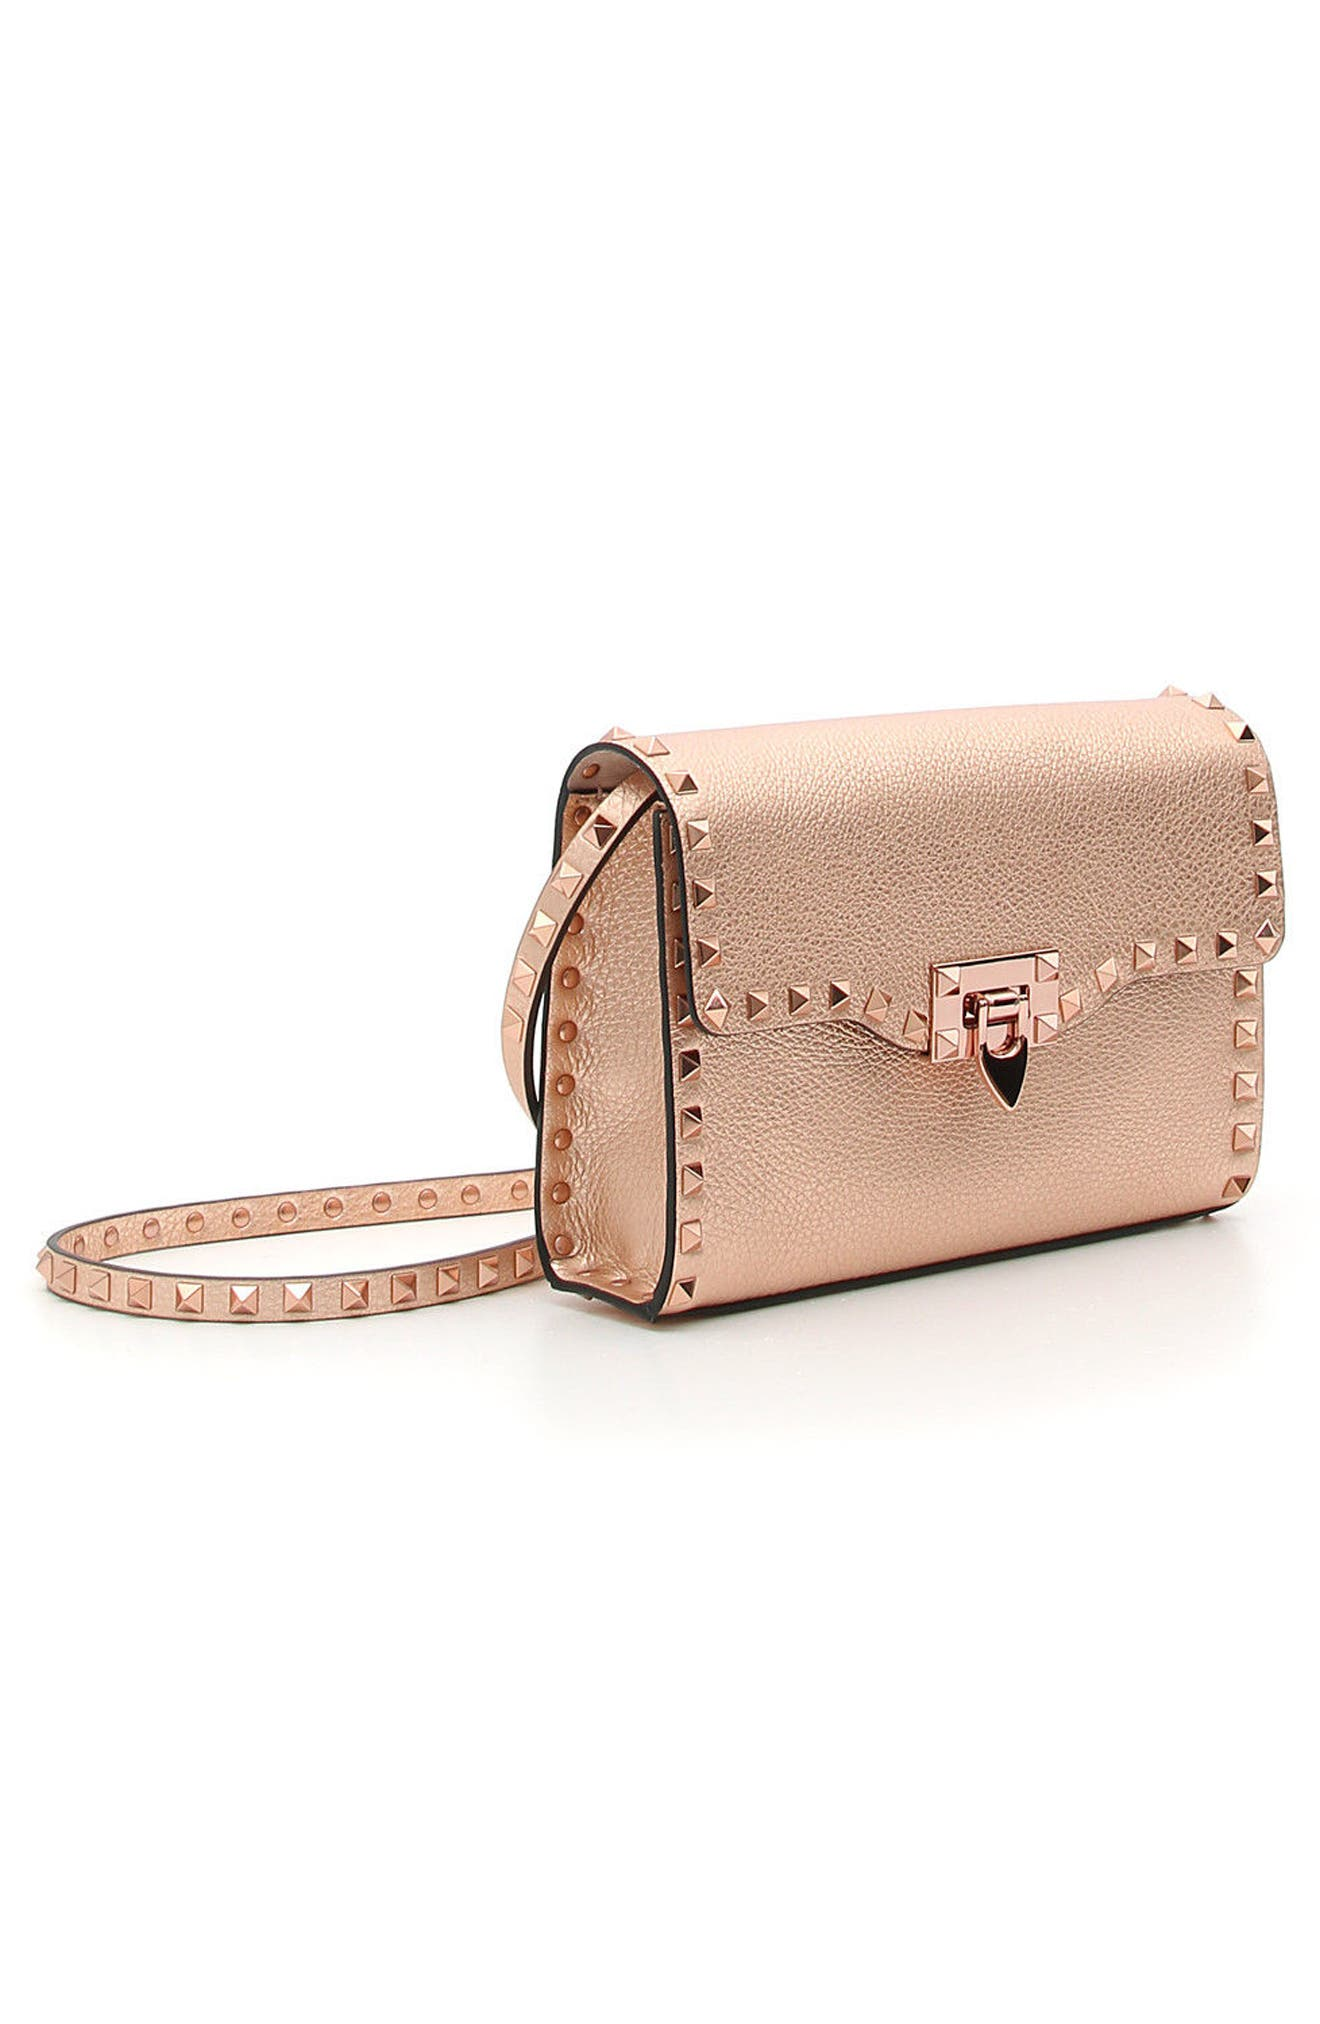 Rockstud Medium Metallic Leather Shoulder Bag,                             Alternate thumbnail 3, color,                             Rosegold